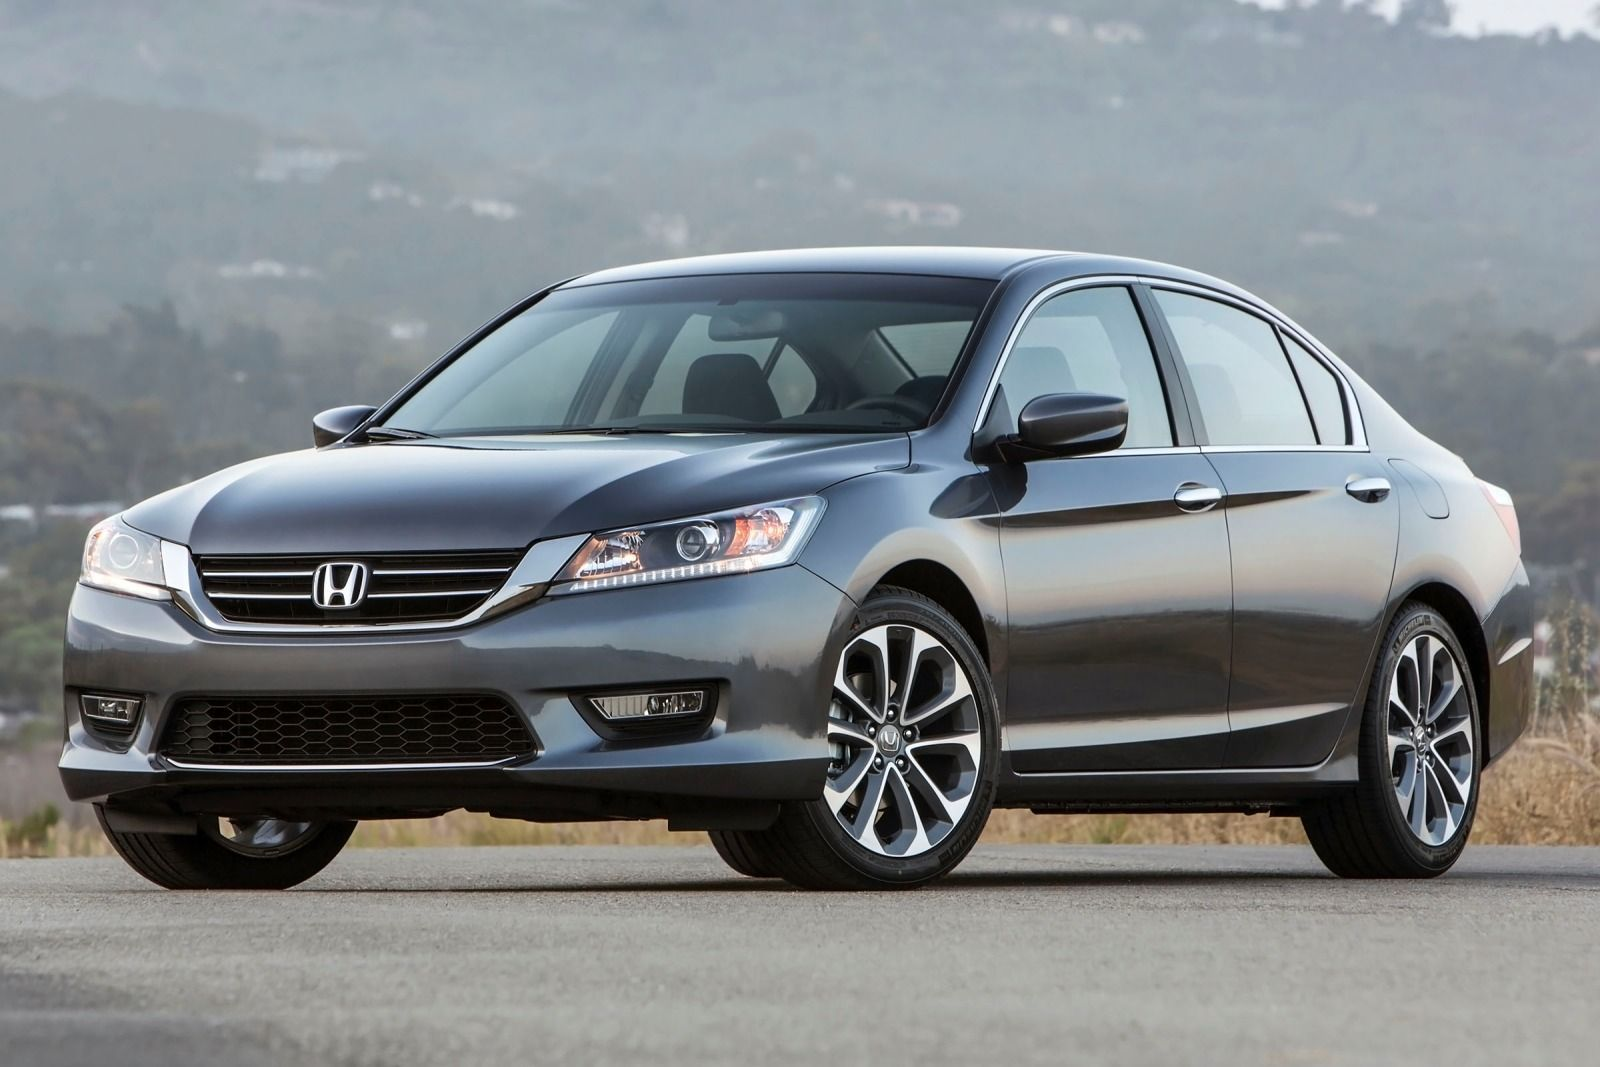 2015 honda accord arrival date High Resolution Wallpaper